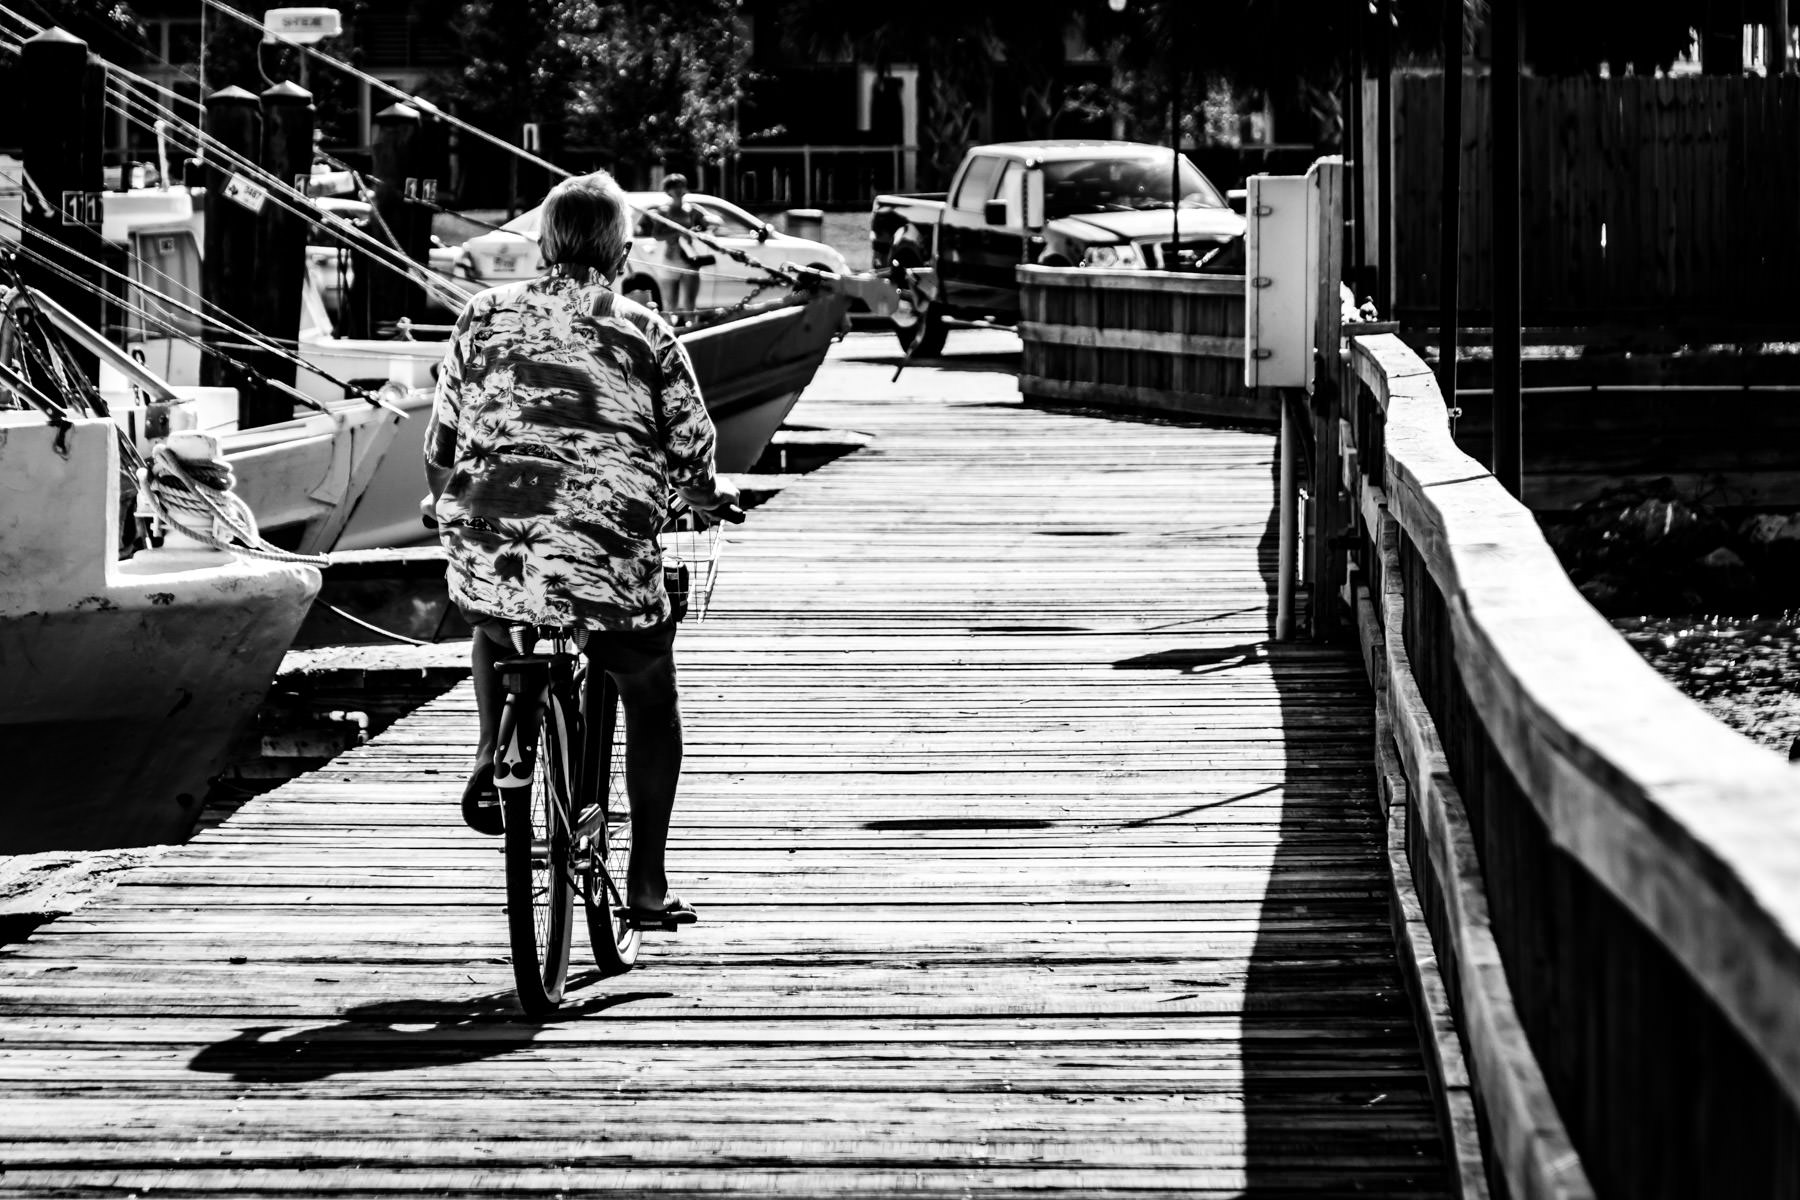 A Hawaiian-shirted gentleman rides a bike along a pier in Galveston, Texas.